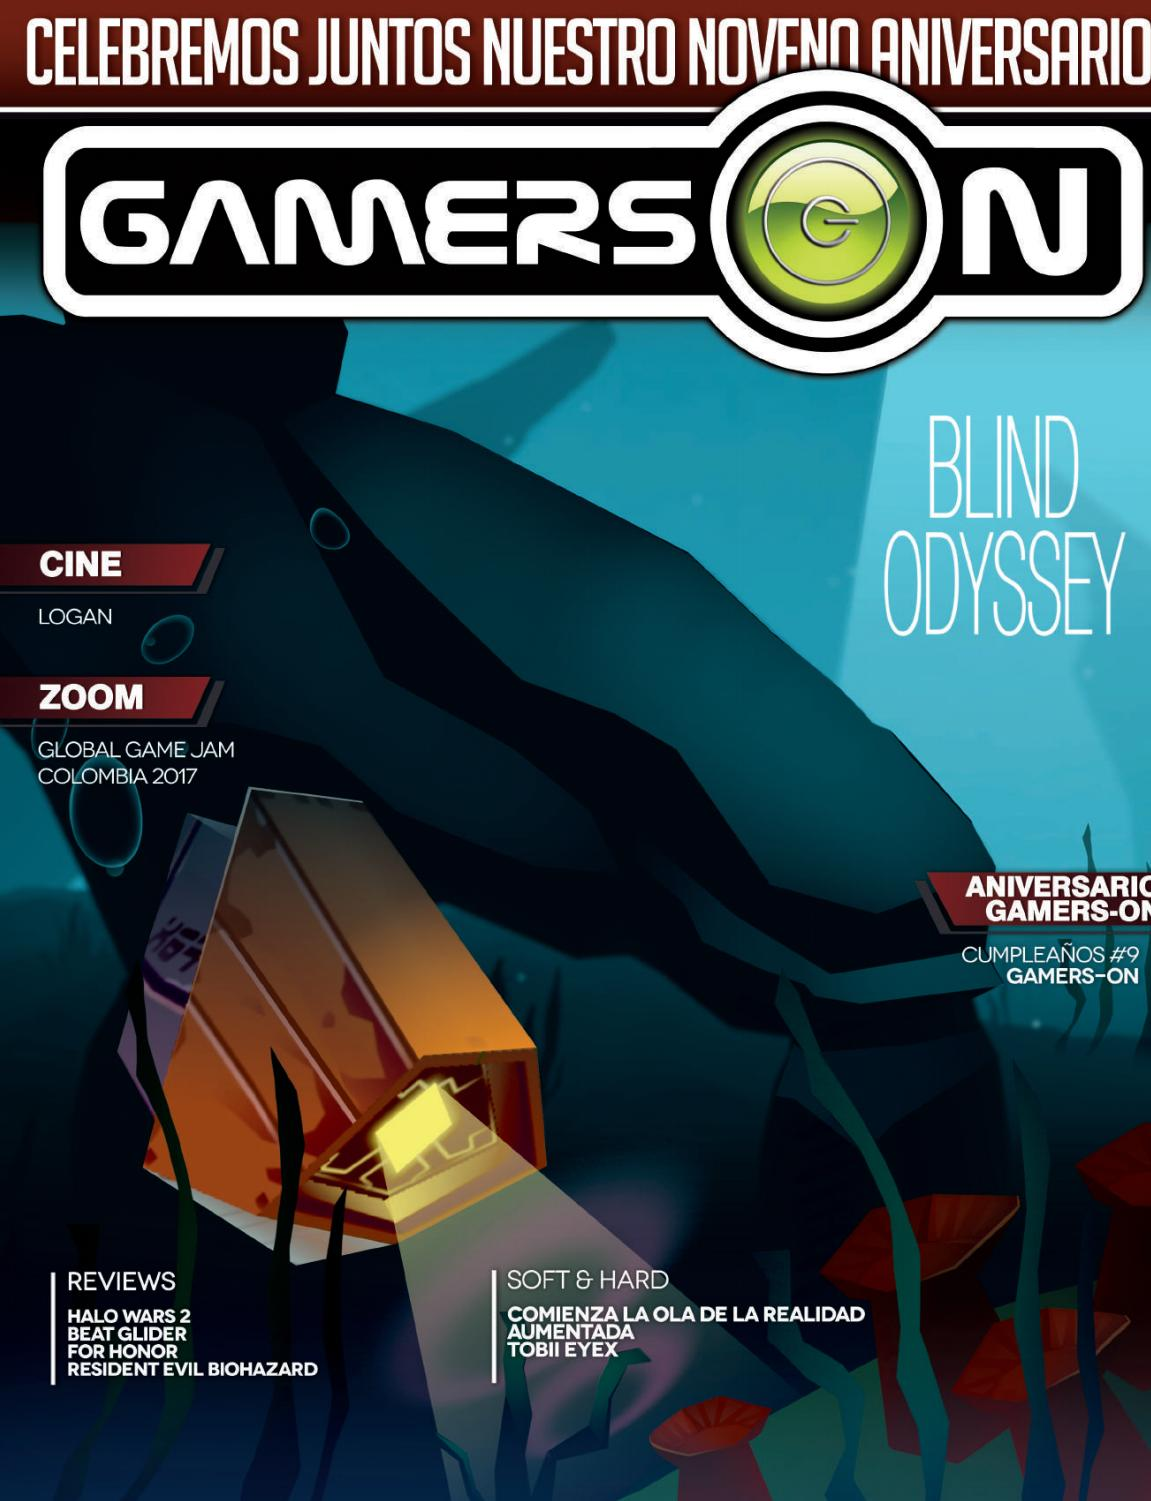 Revista gamers-on edición 95 by Prensa Gamers-on - issuu